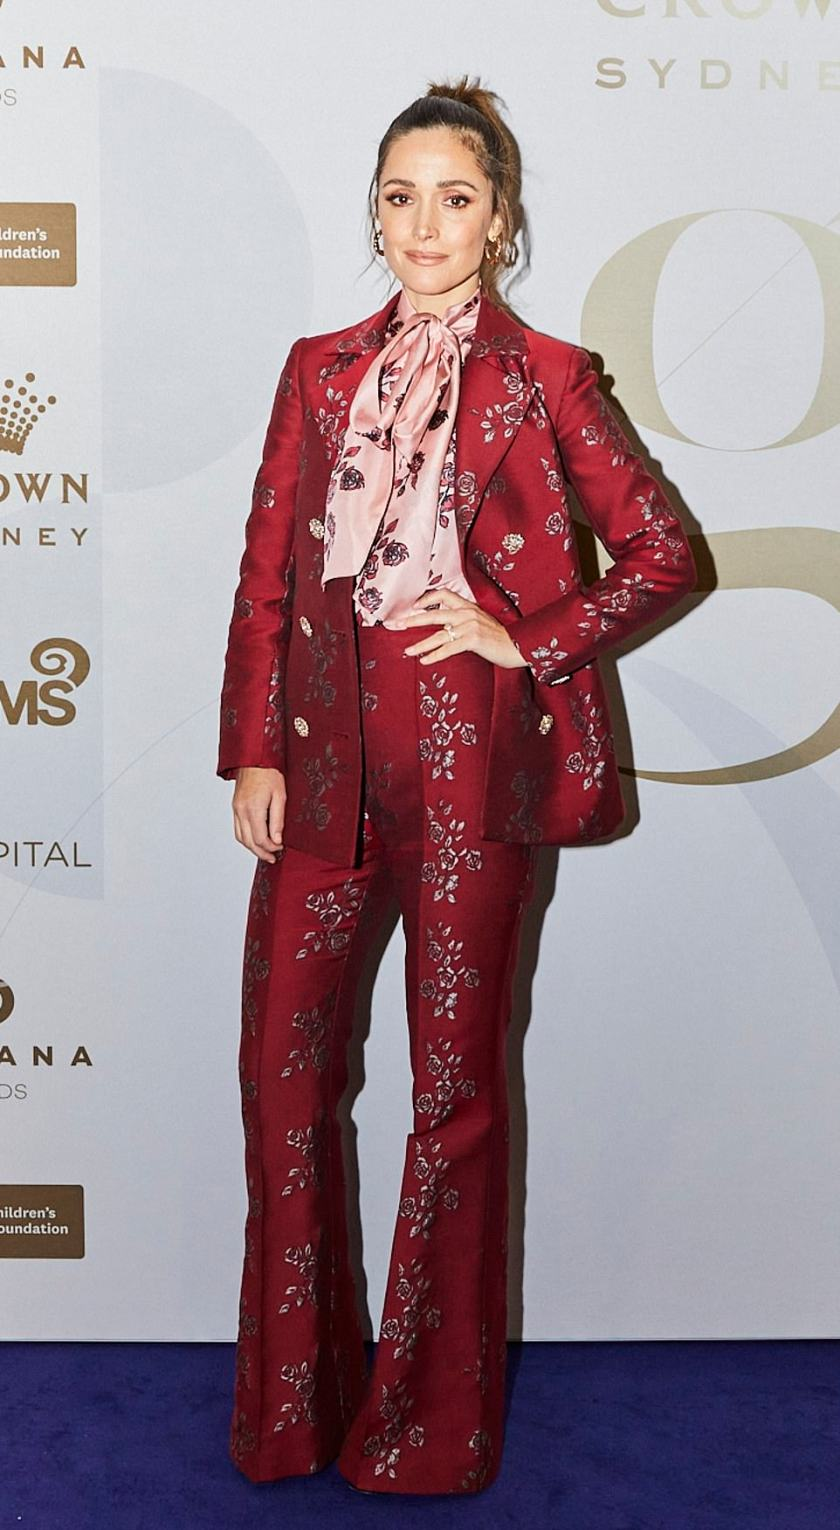 Androgynous chic: Rose Byrne turned heads in a red pantsuit featuring gold floral detailing and a matching pink cravat